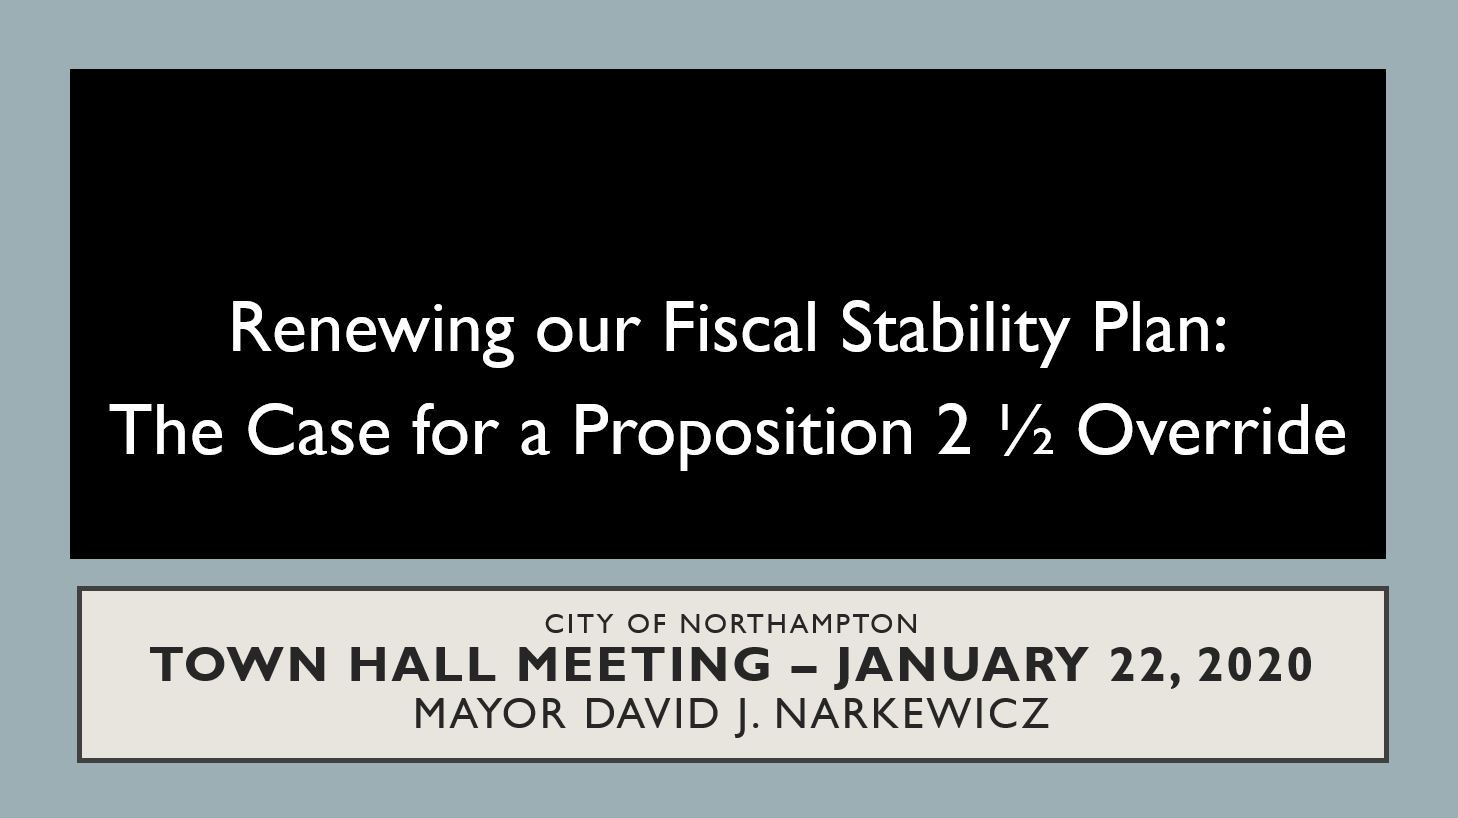 Image of Renewing Fiscal Stability Plan Presentation